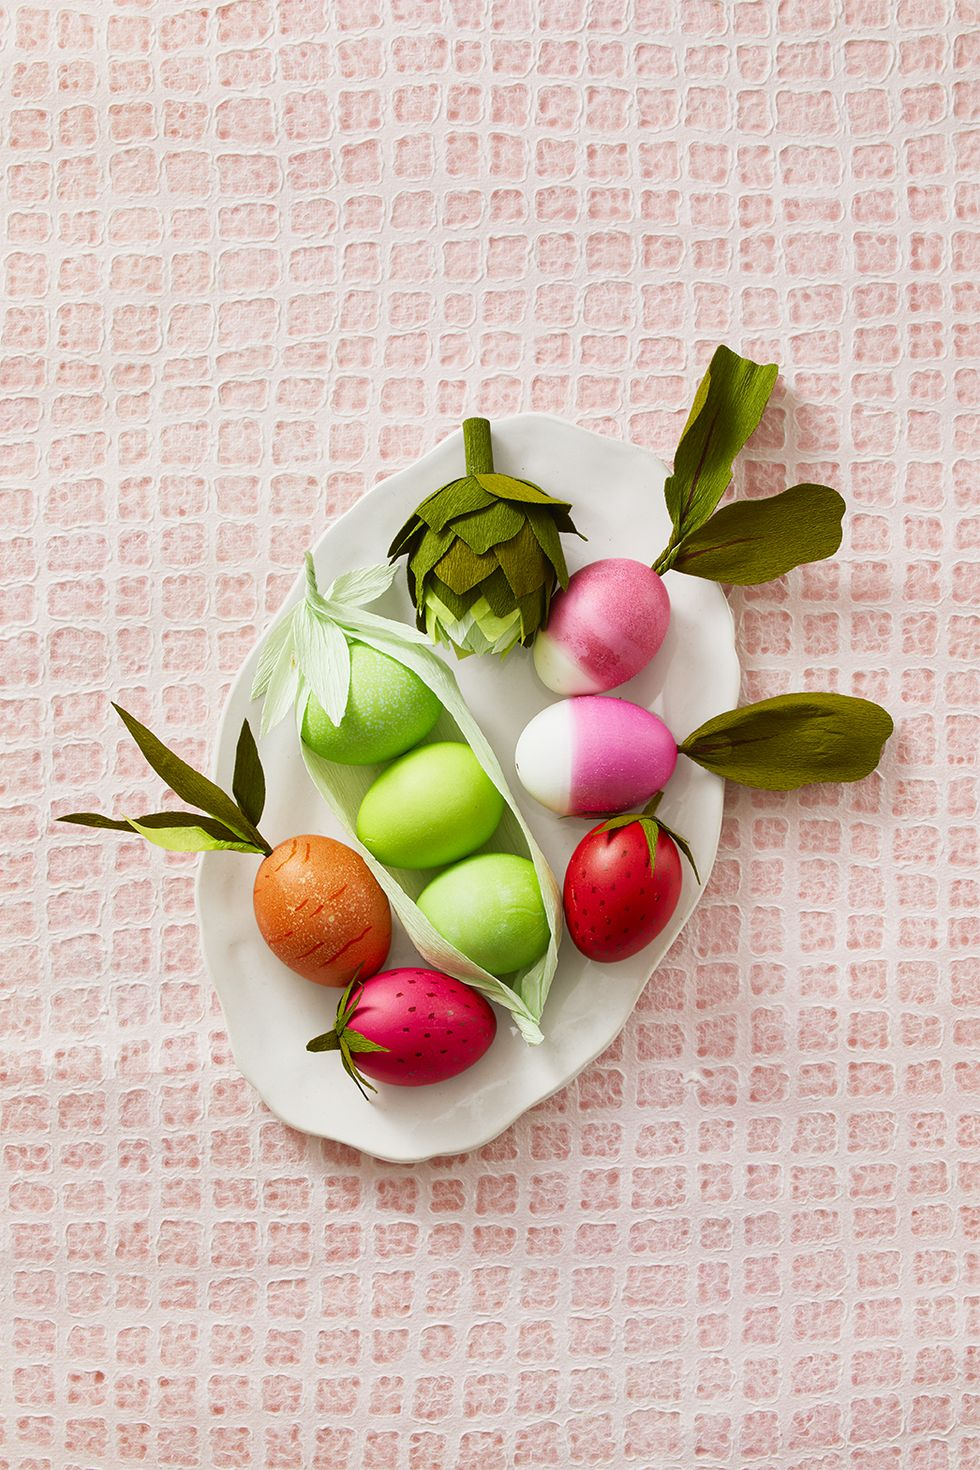 60 Easy and Creative Easter Egg Ideas That Anyone Can DIY